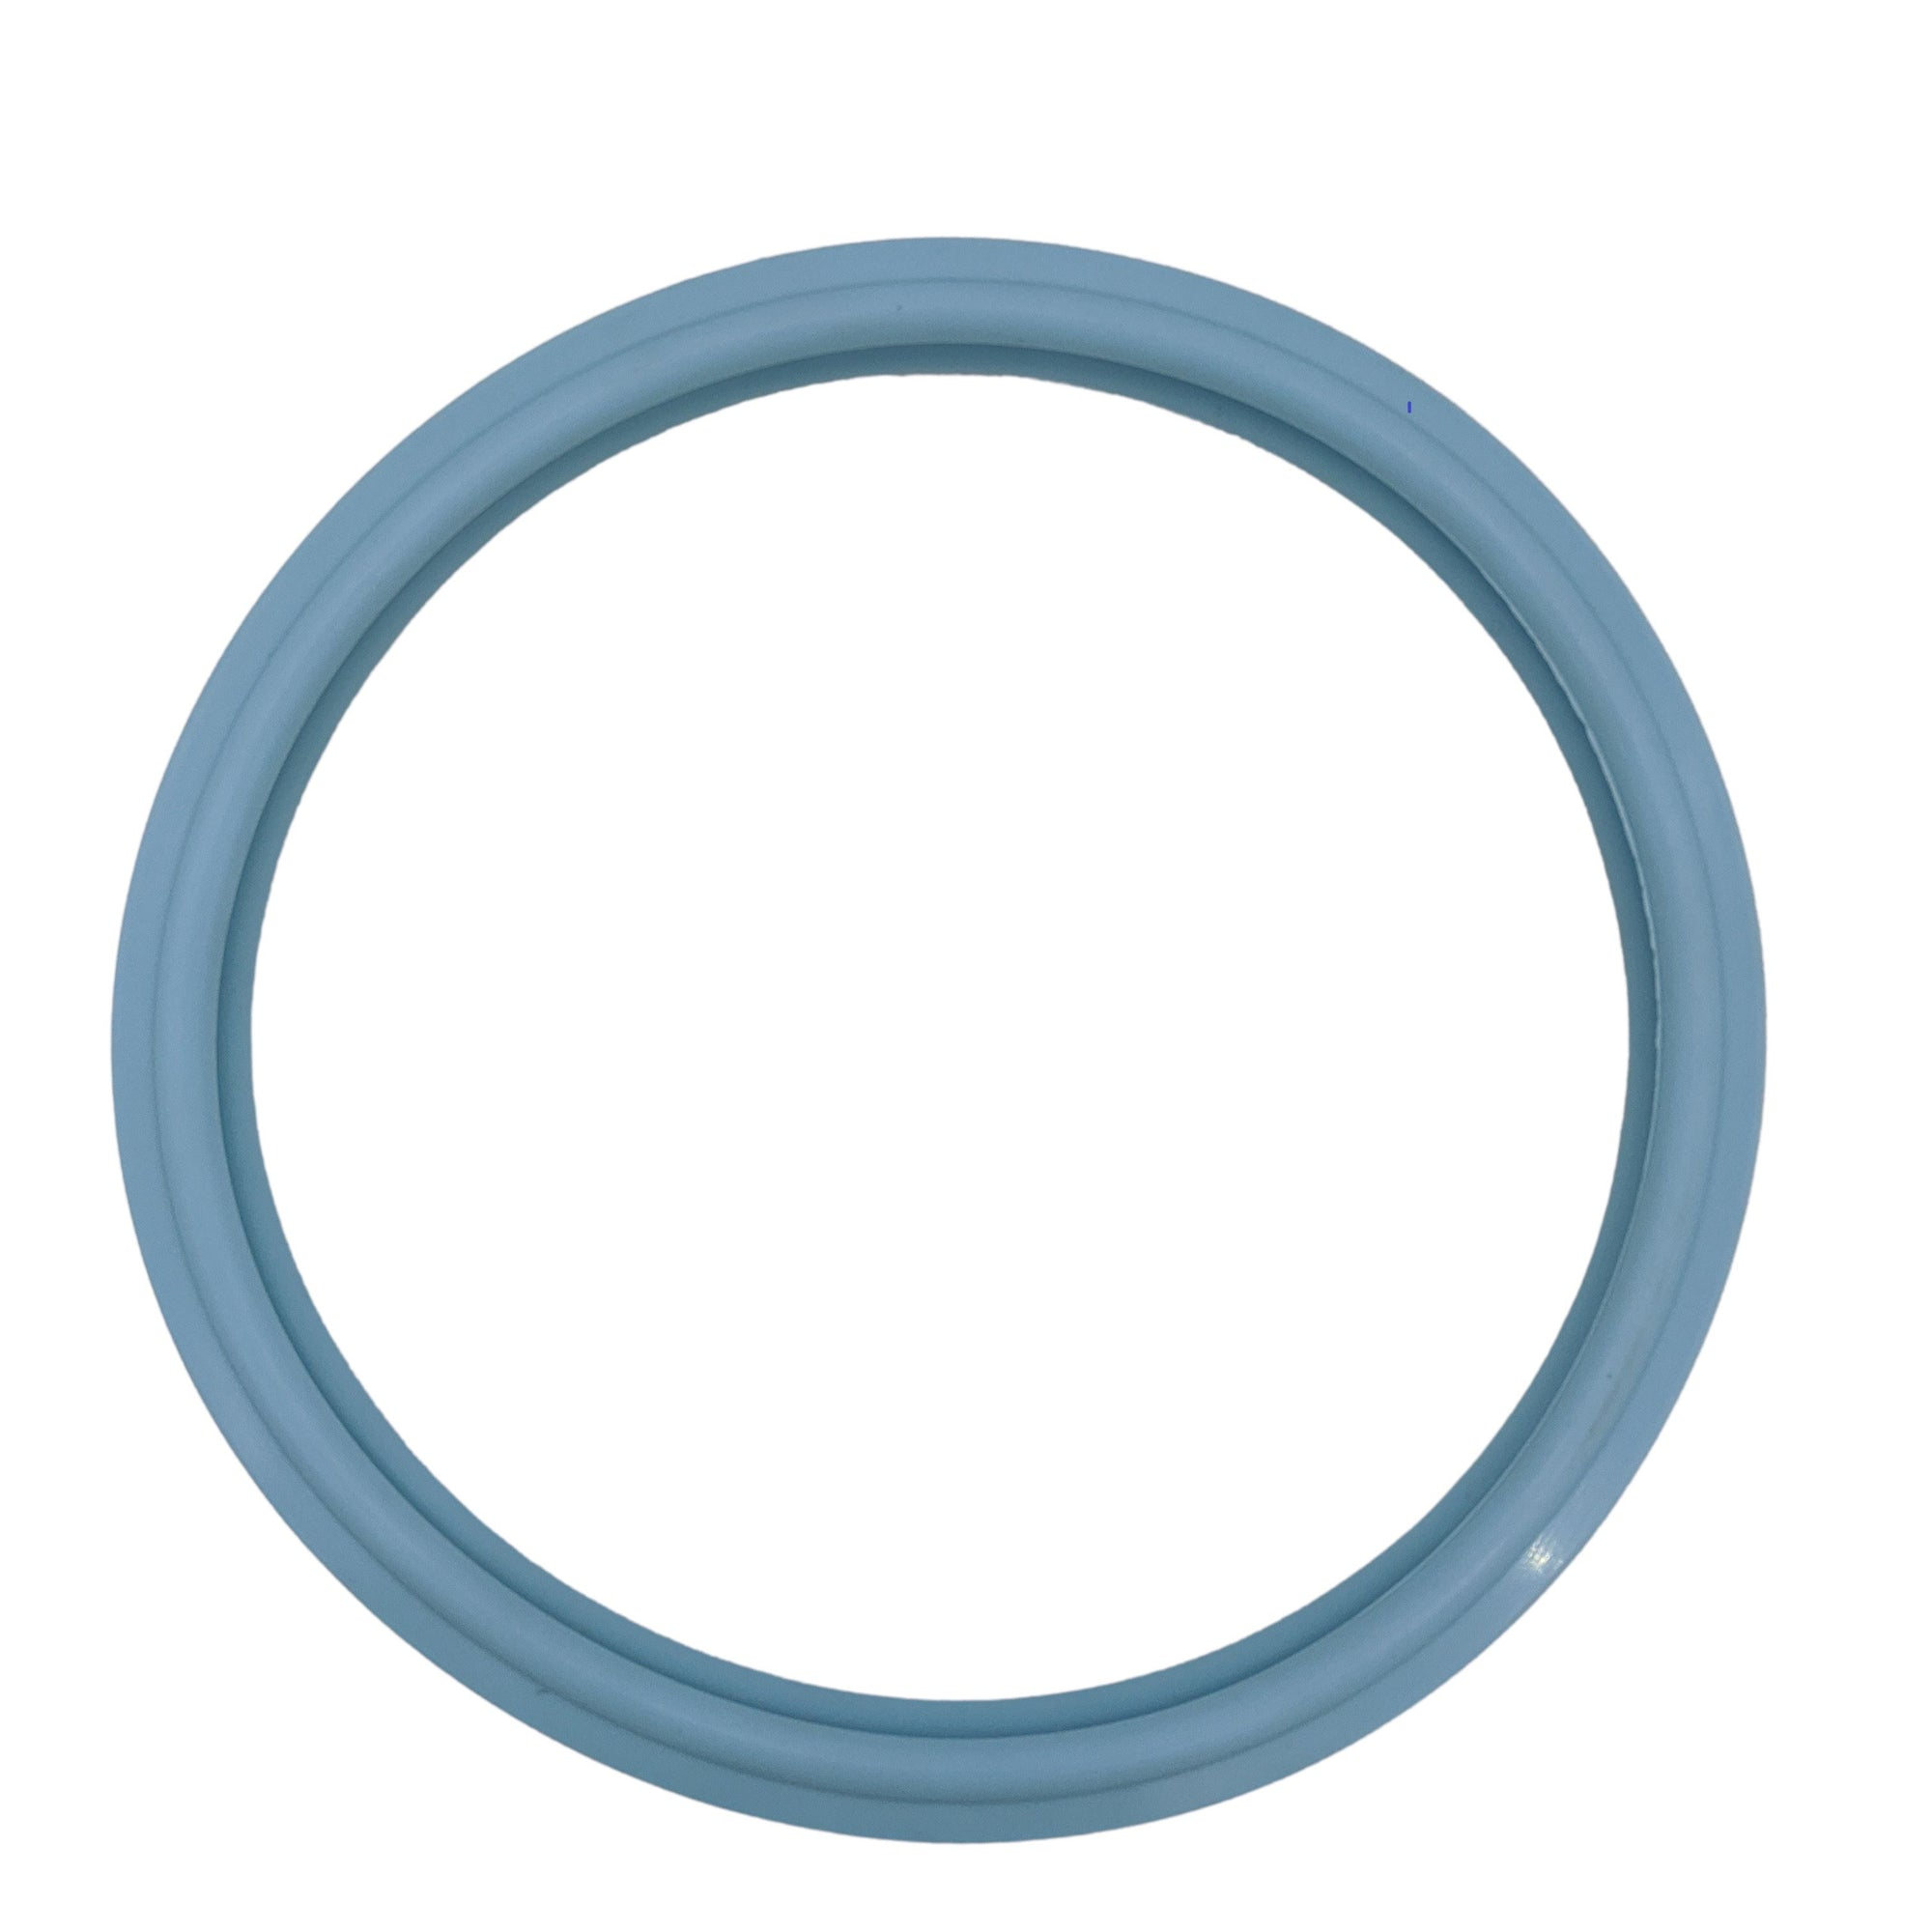 Pentair® Amerlite® Sam® Swimming Pool Light Lens Gasket O-170 79101600Z 79101600 Home & Garden > Pool & Spa Pentair